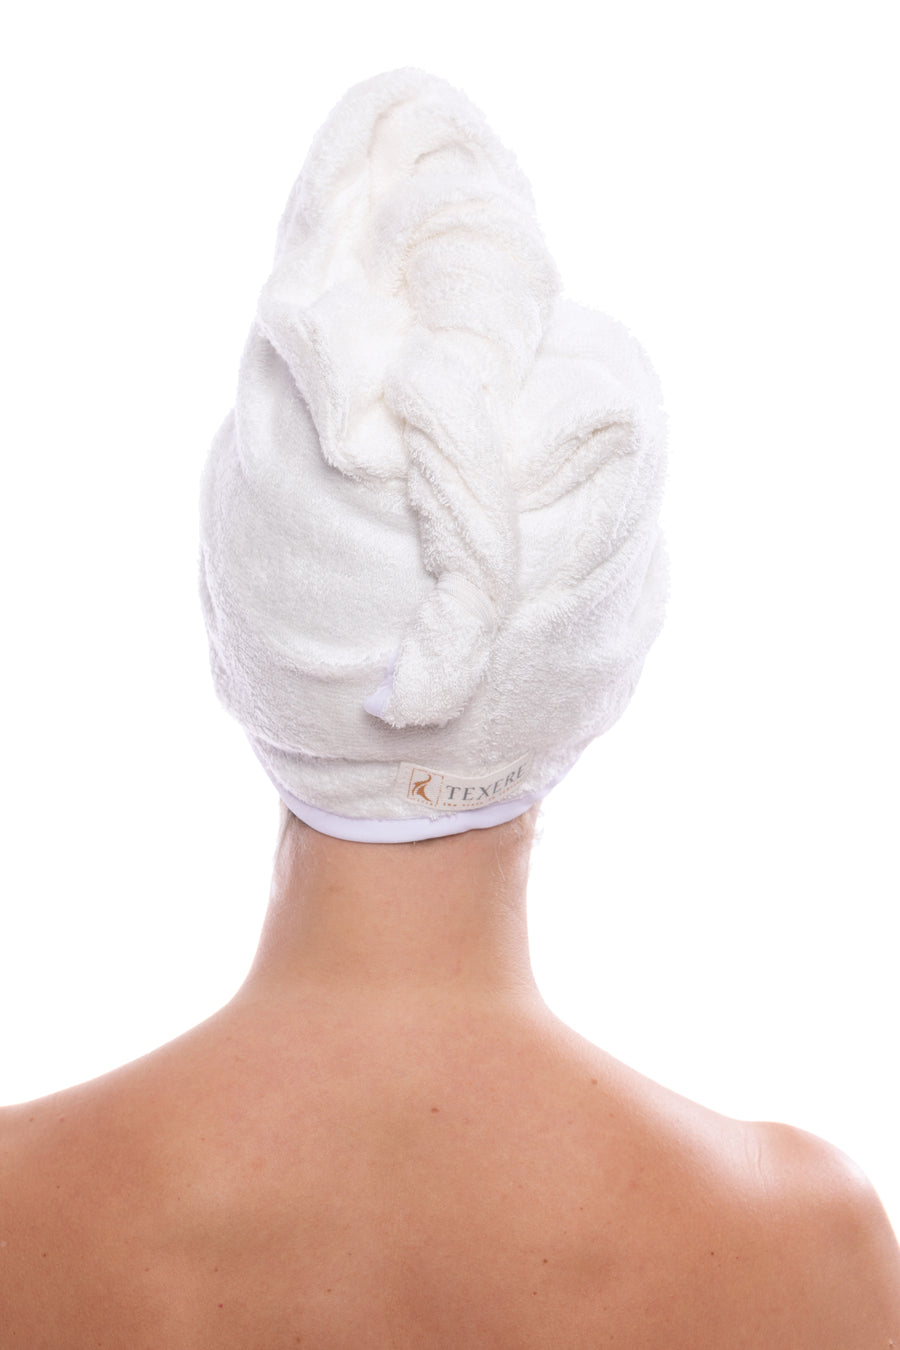 Arethusa - Women's Bamboo Viscose Spa Hair Towel - testing23451234 - Hair Towels